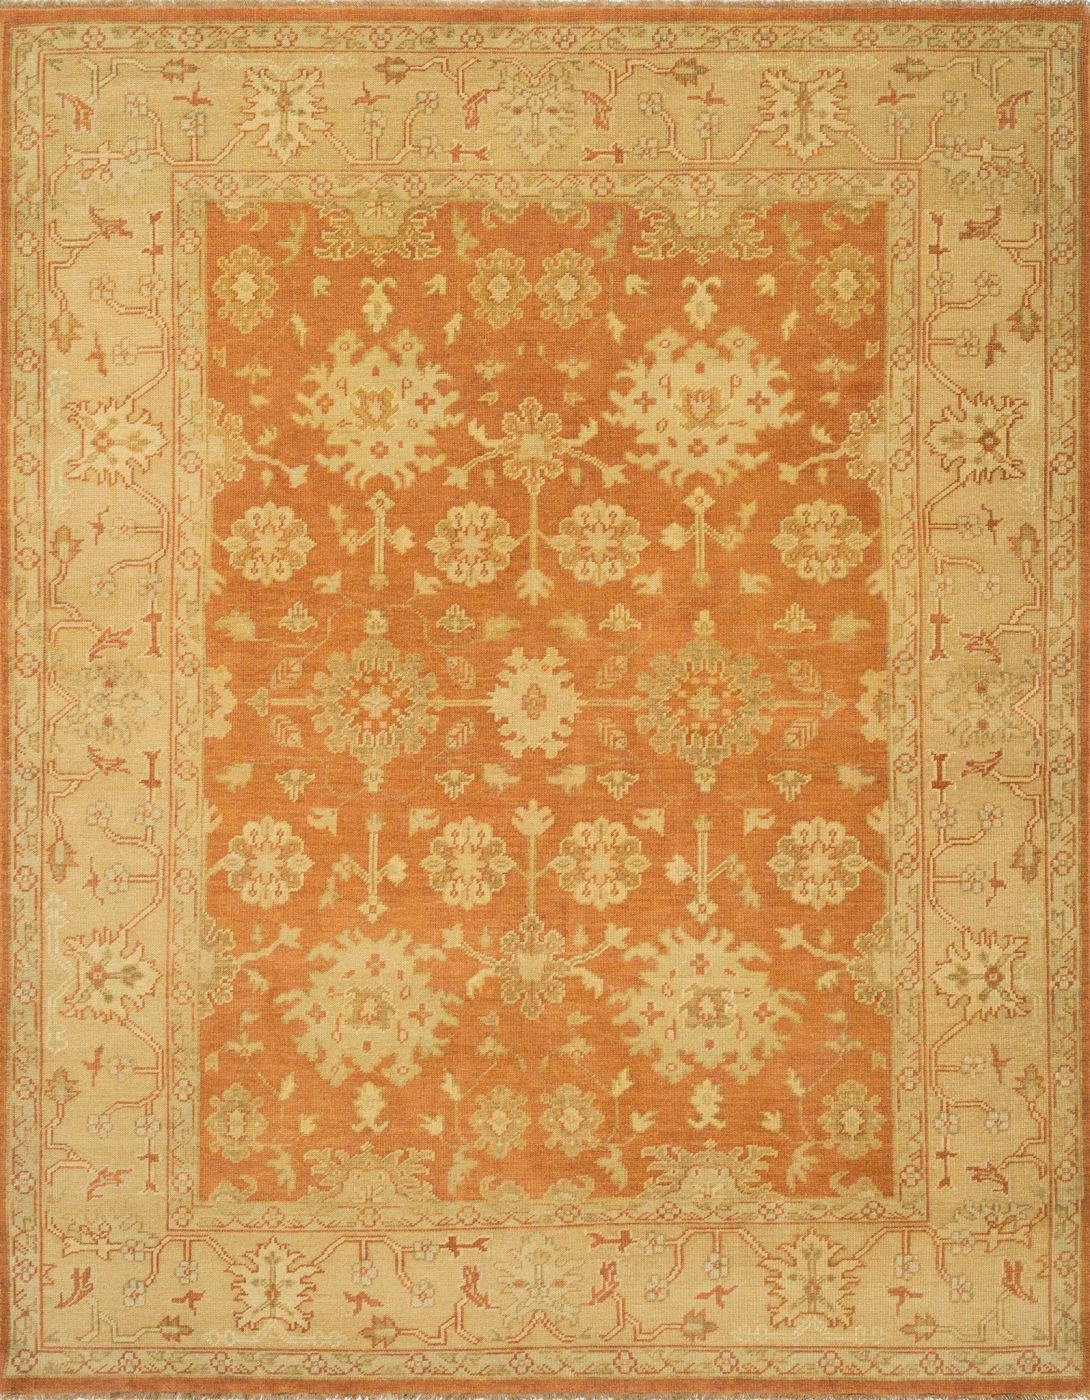 Picture of: Buy Loloi Rugs Vernvn 05aagoc0f0 Loloi Vernon Auburn Gold Area Rug At Contemporary Furniture Warehouse